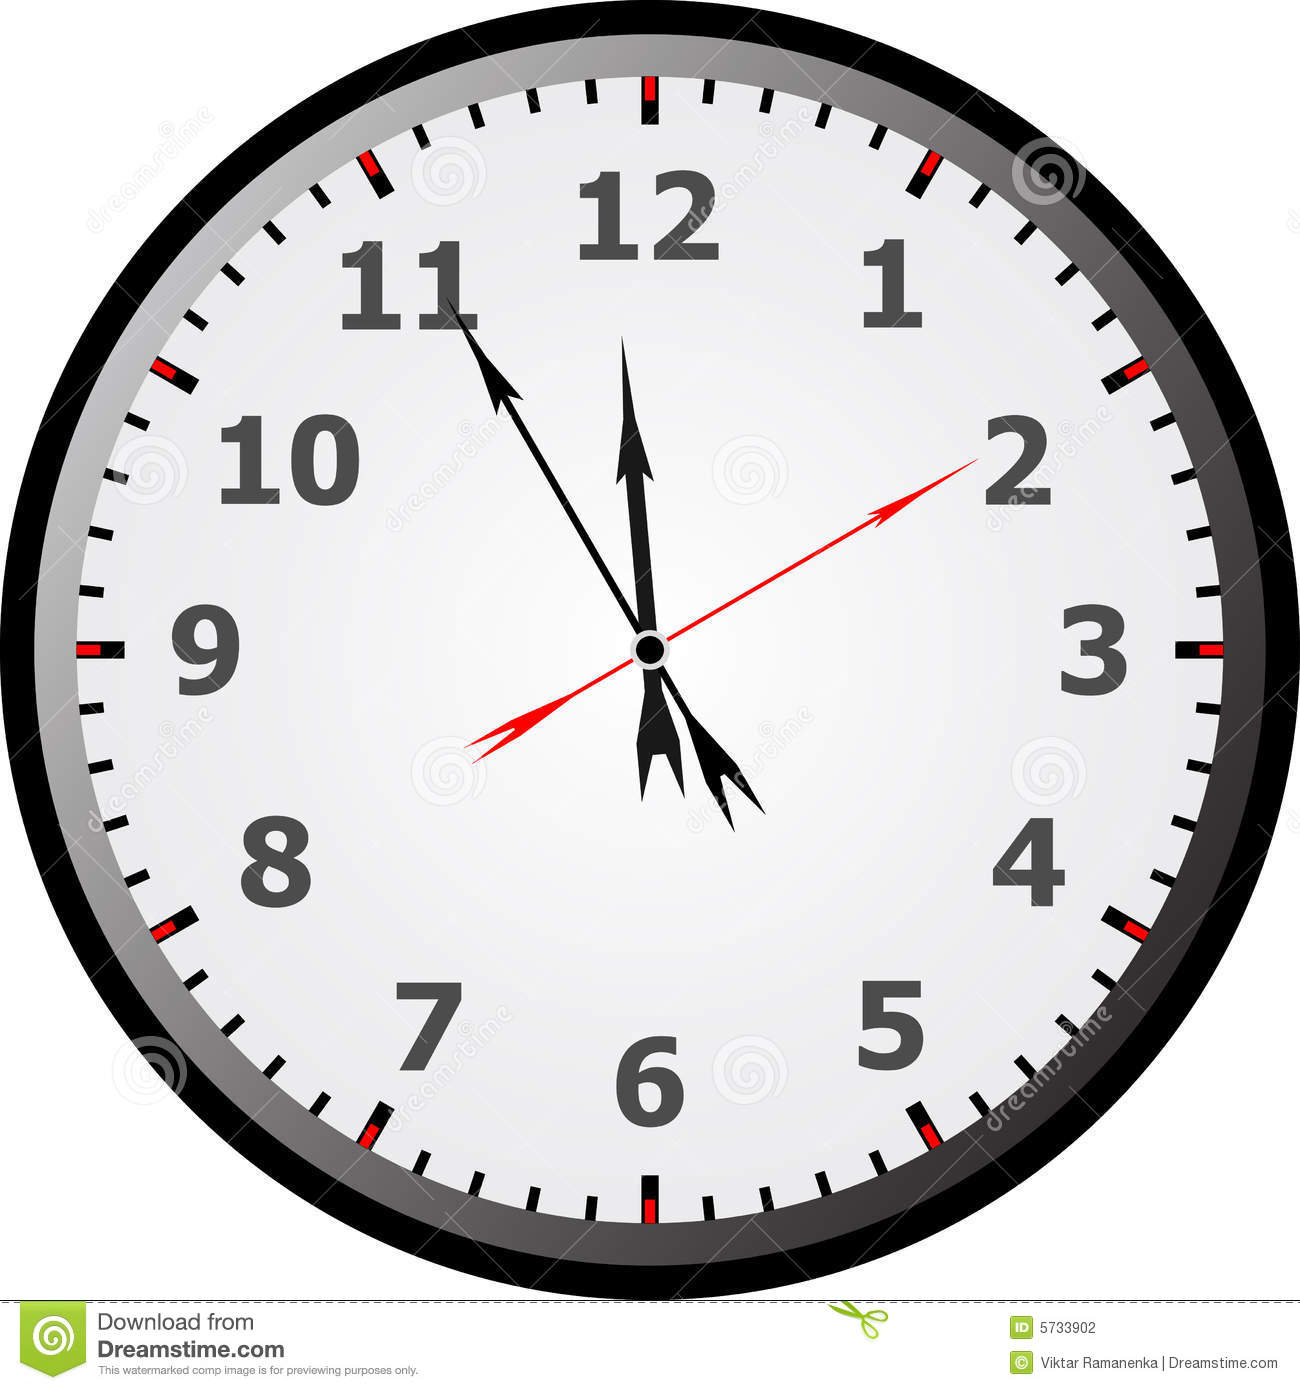 Image result for images of a clock face